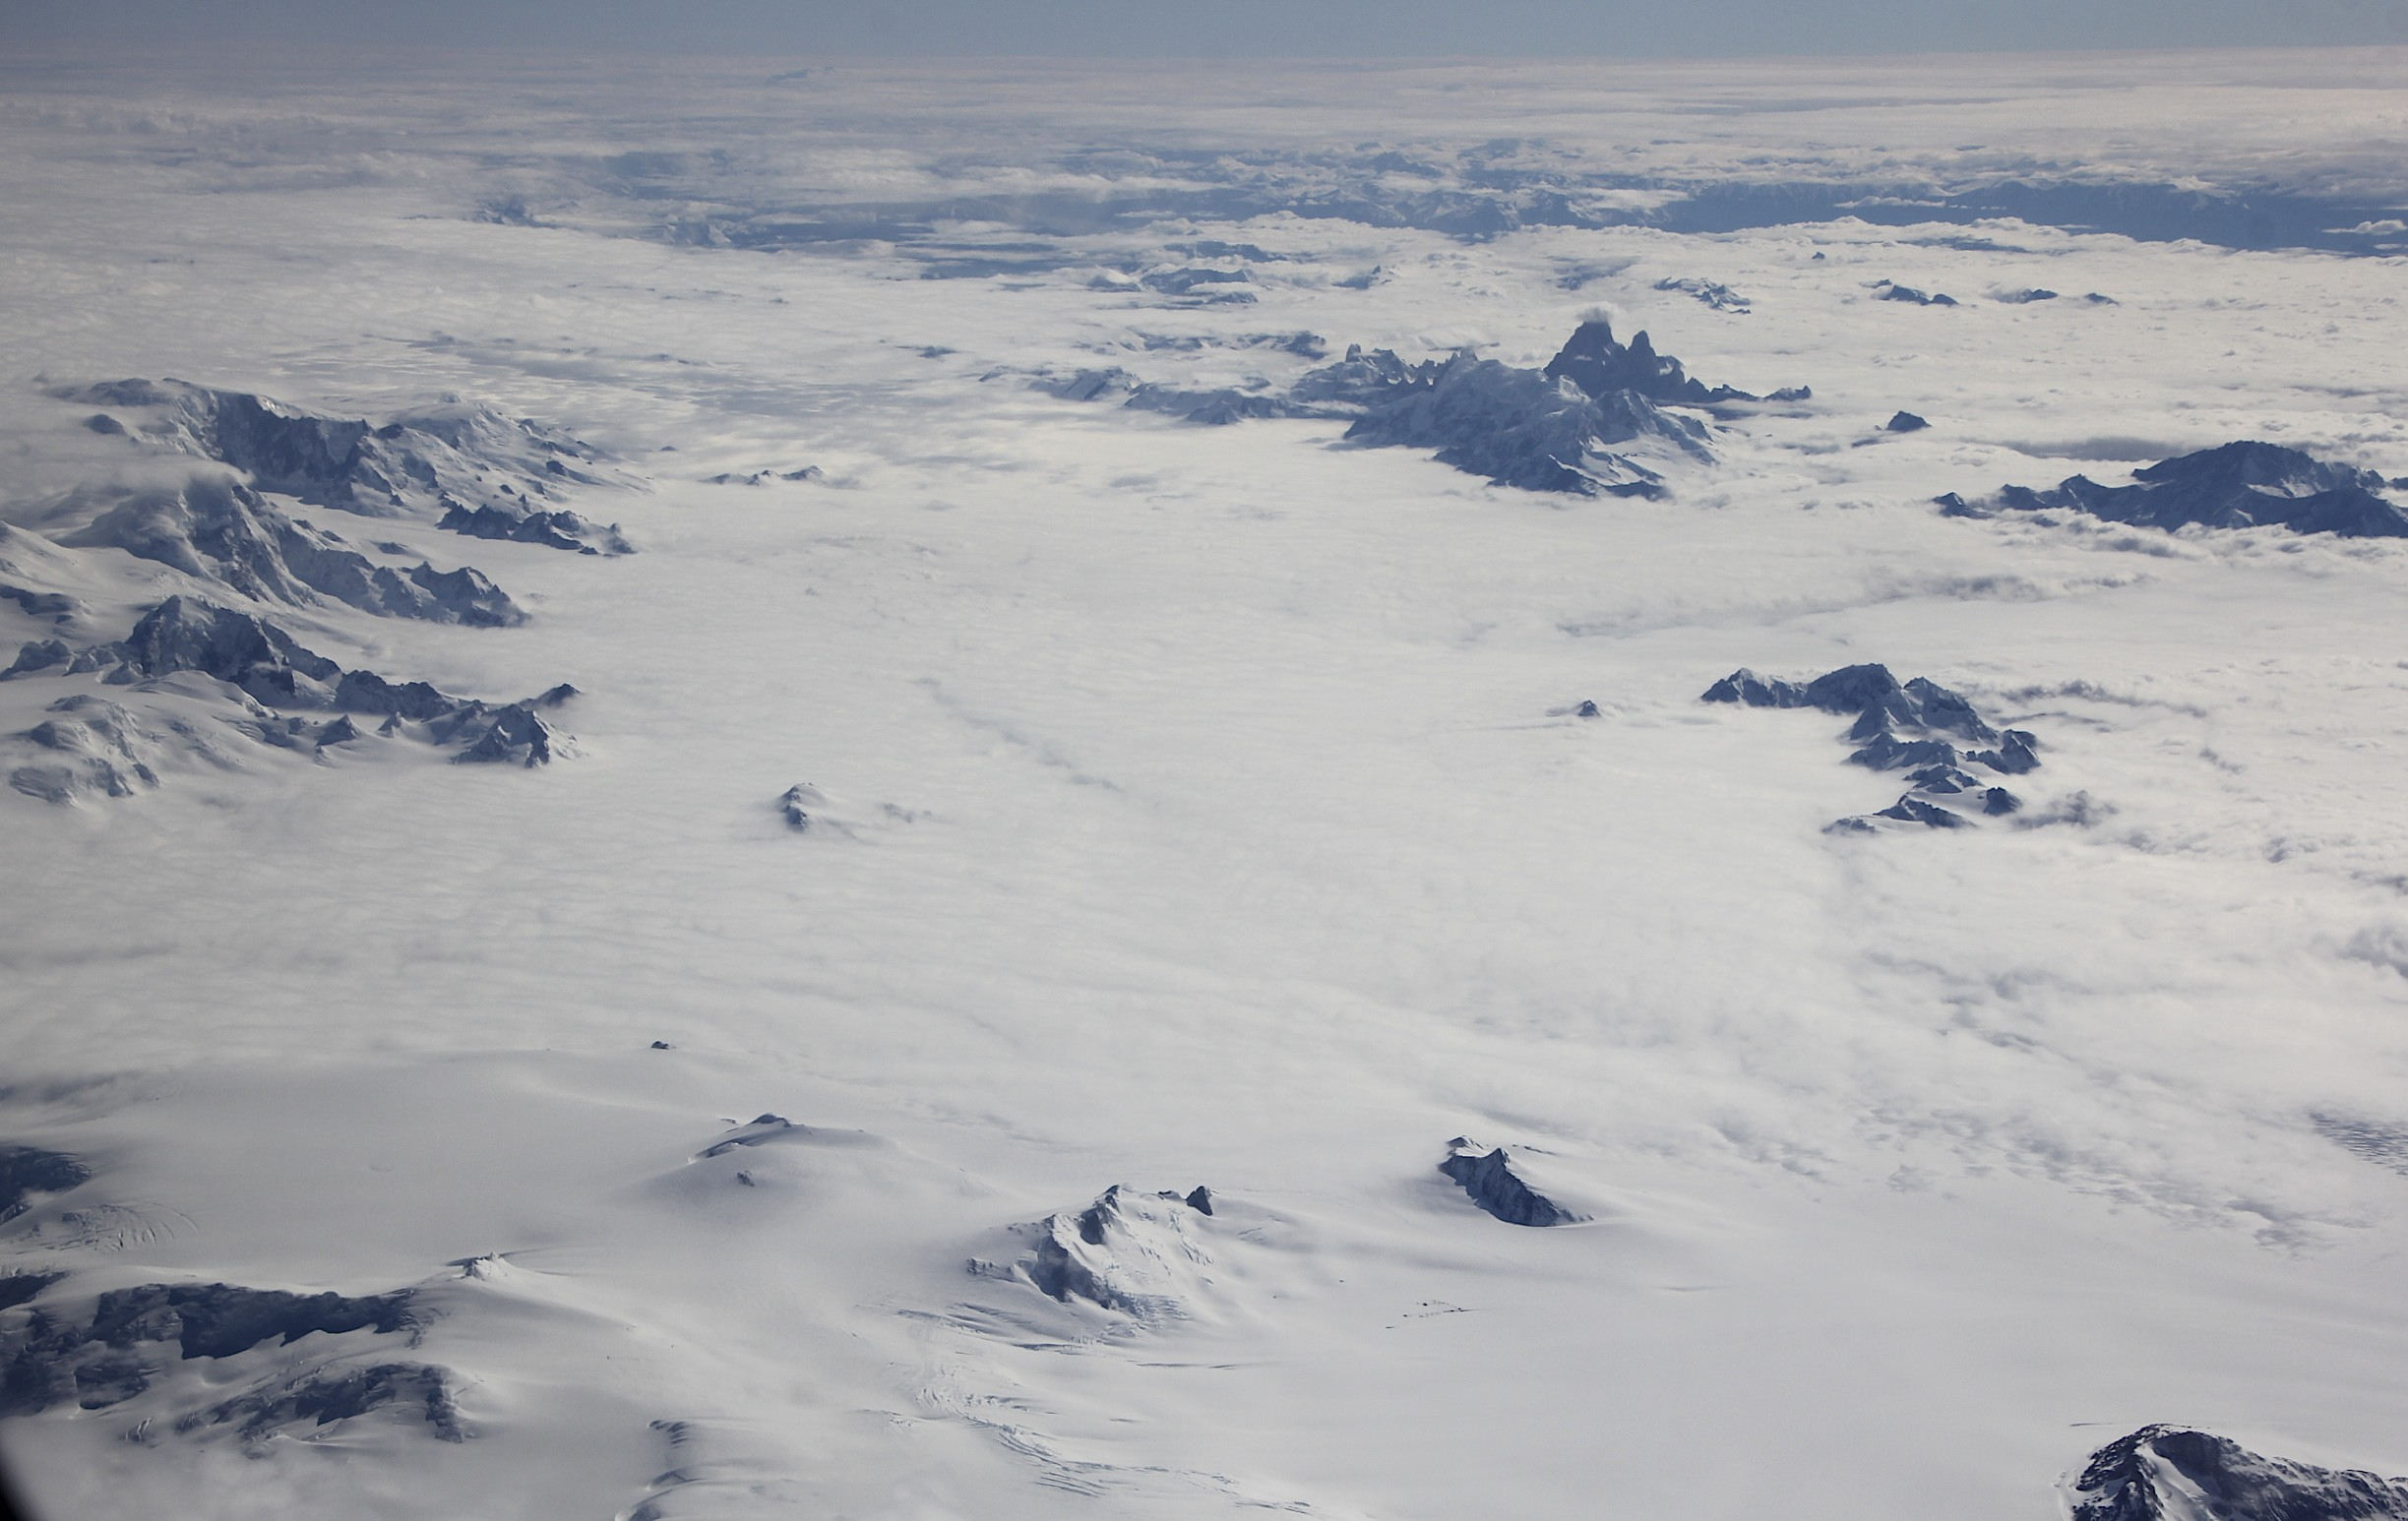 Southern Patagonian Icefield from the air - Fitz Roy and Cerro Torre on the right